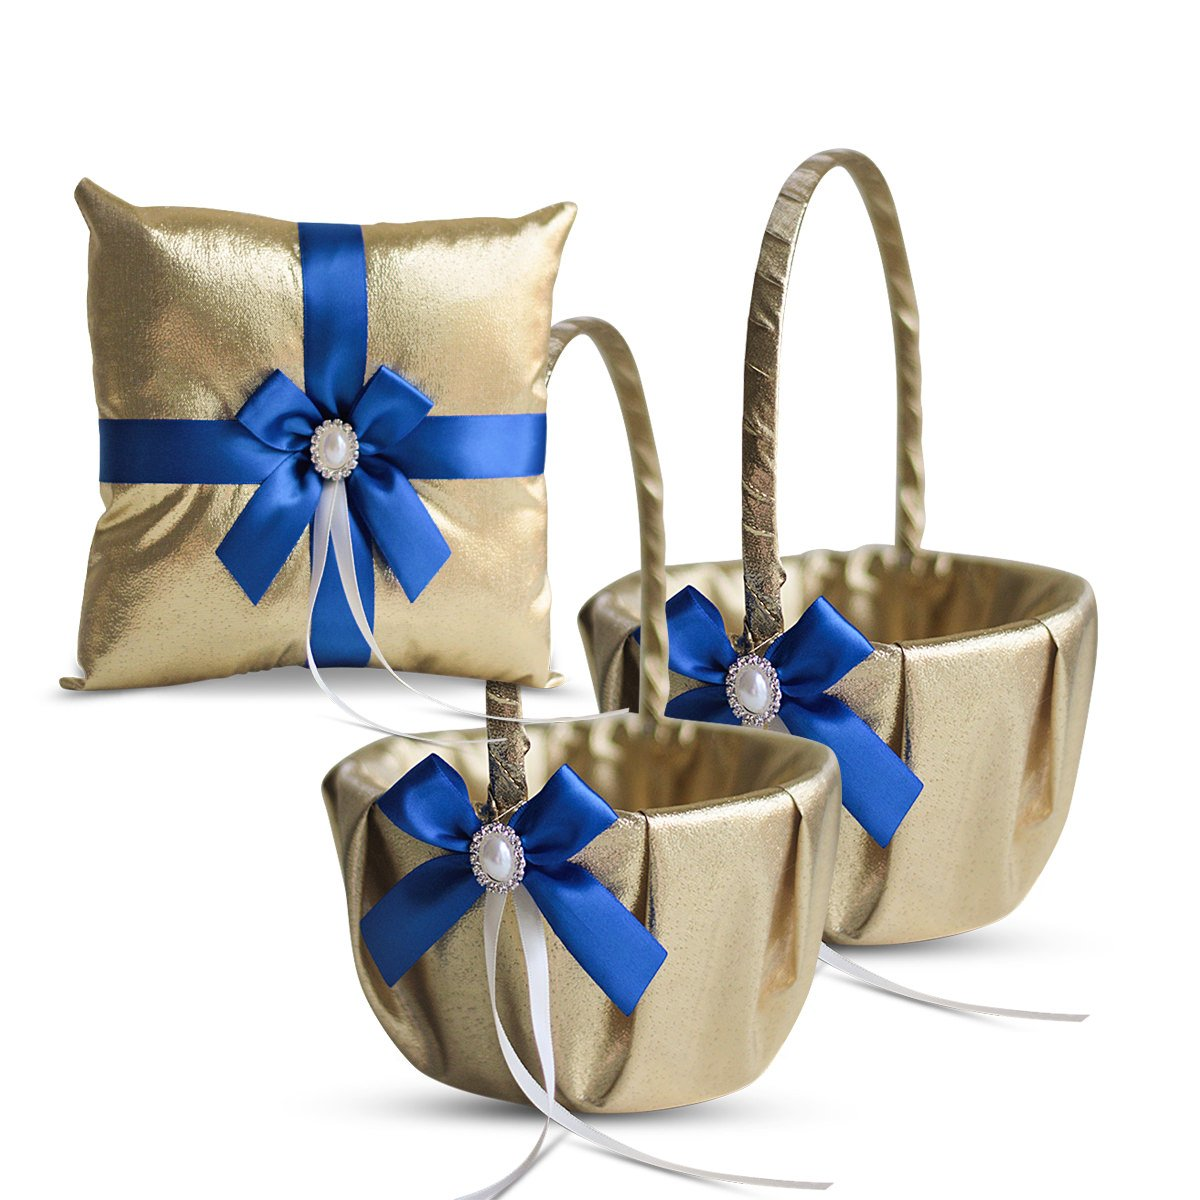 RomanStore Gold & Royal Blue Wedding Ring Bearer Pillow and Flower Girl Basket Set - Satin & Ribbons - Pairs Well with Most Dresses & Themes - Splendour Every Wedding Deserves